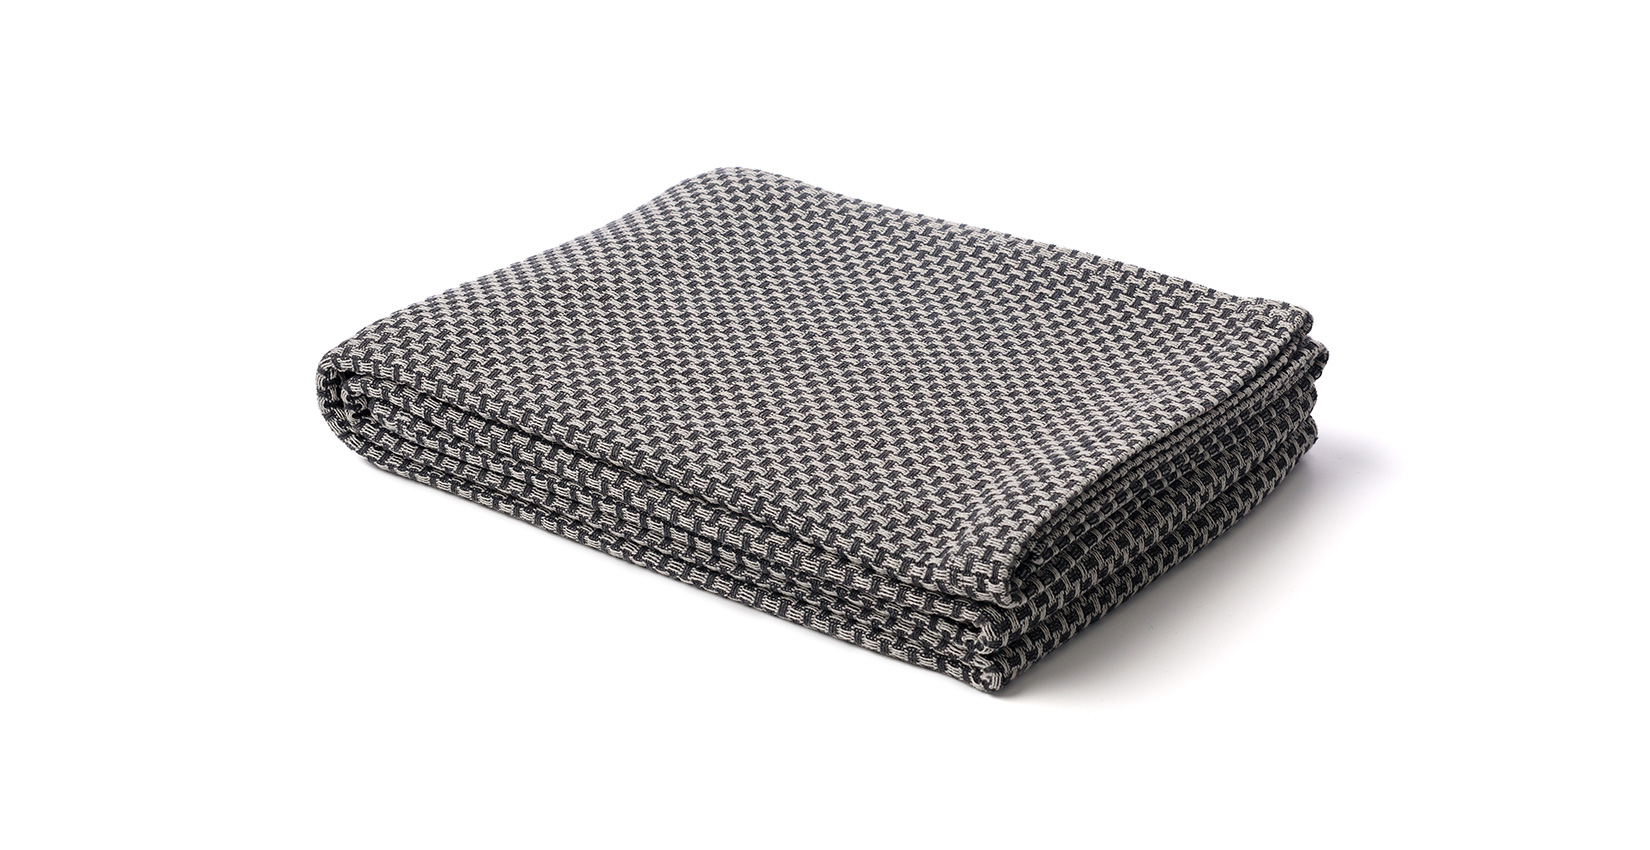 Bedspreads, colchas - Rufus